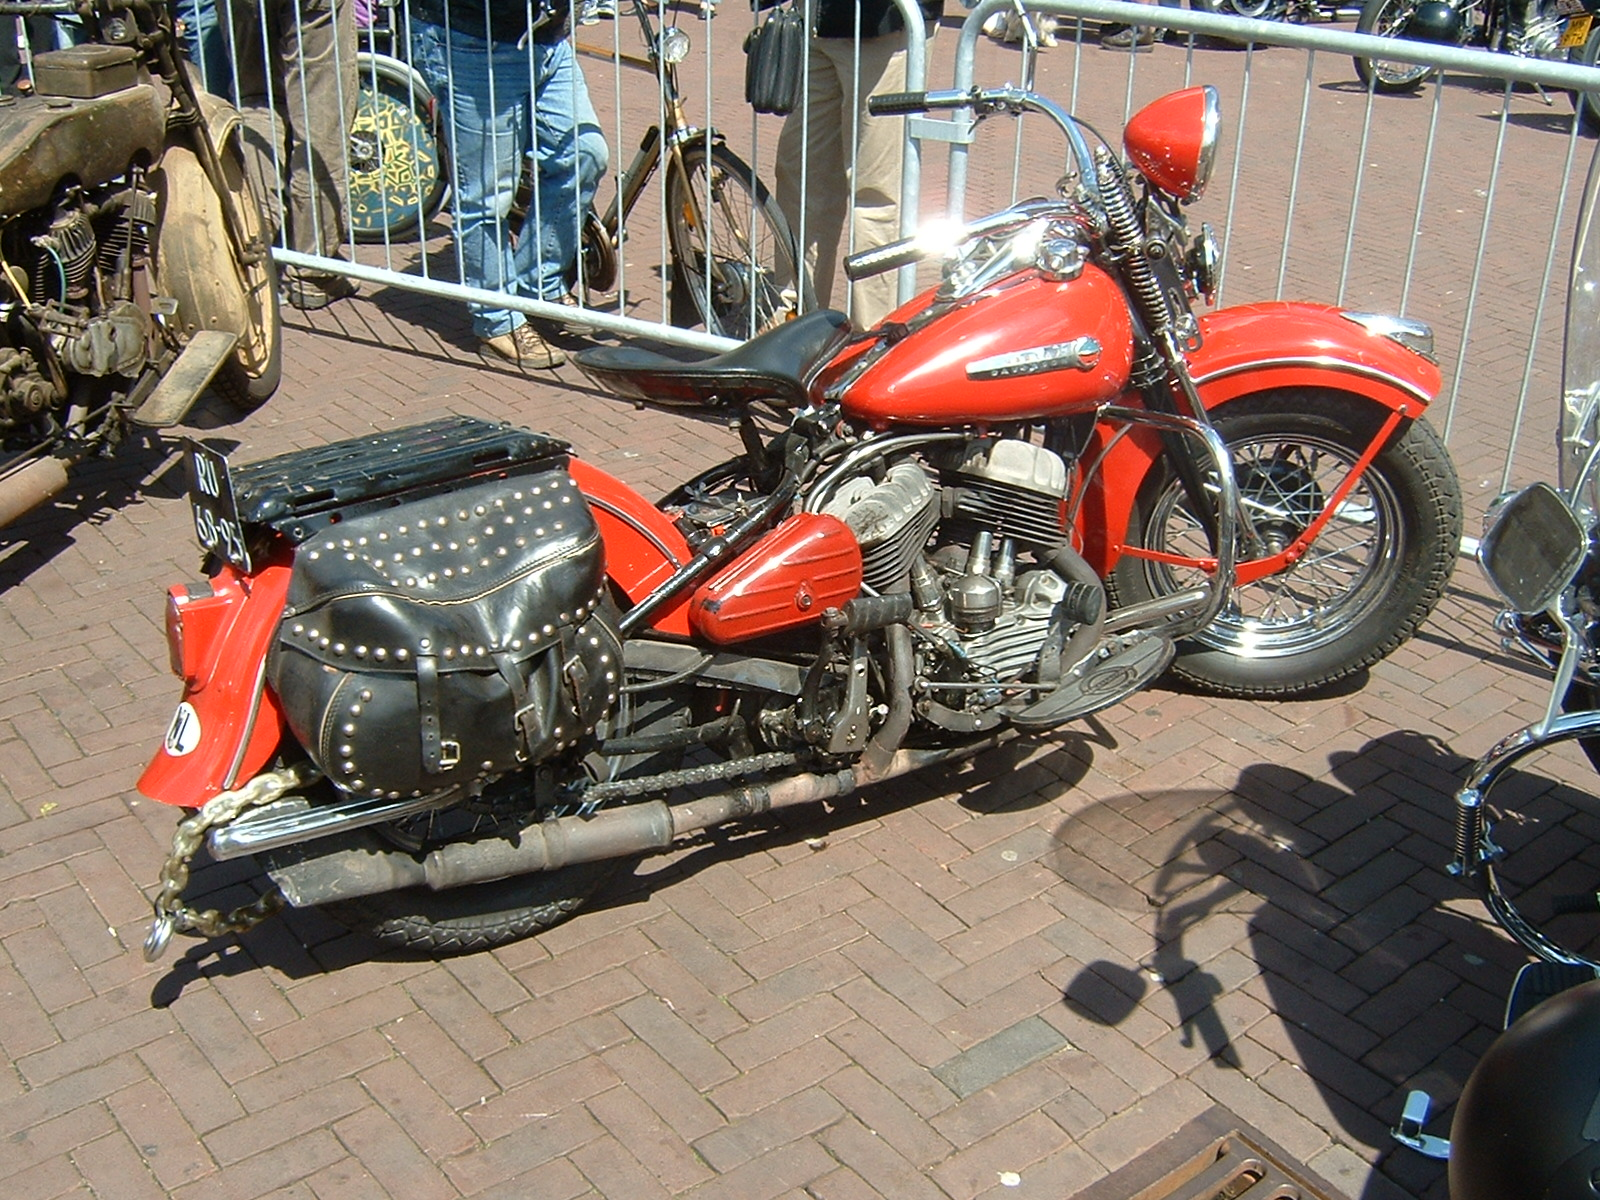 Harley Davidson Strong 2003 Wiring Diagram The Great Depression